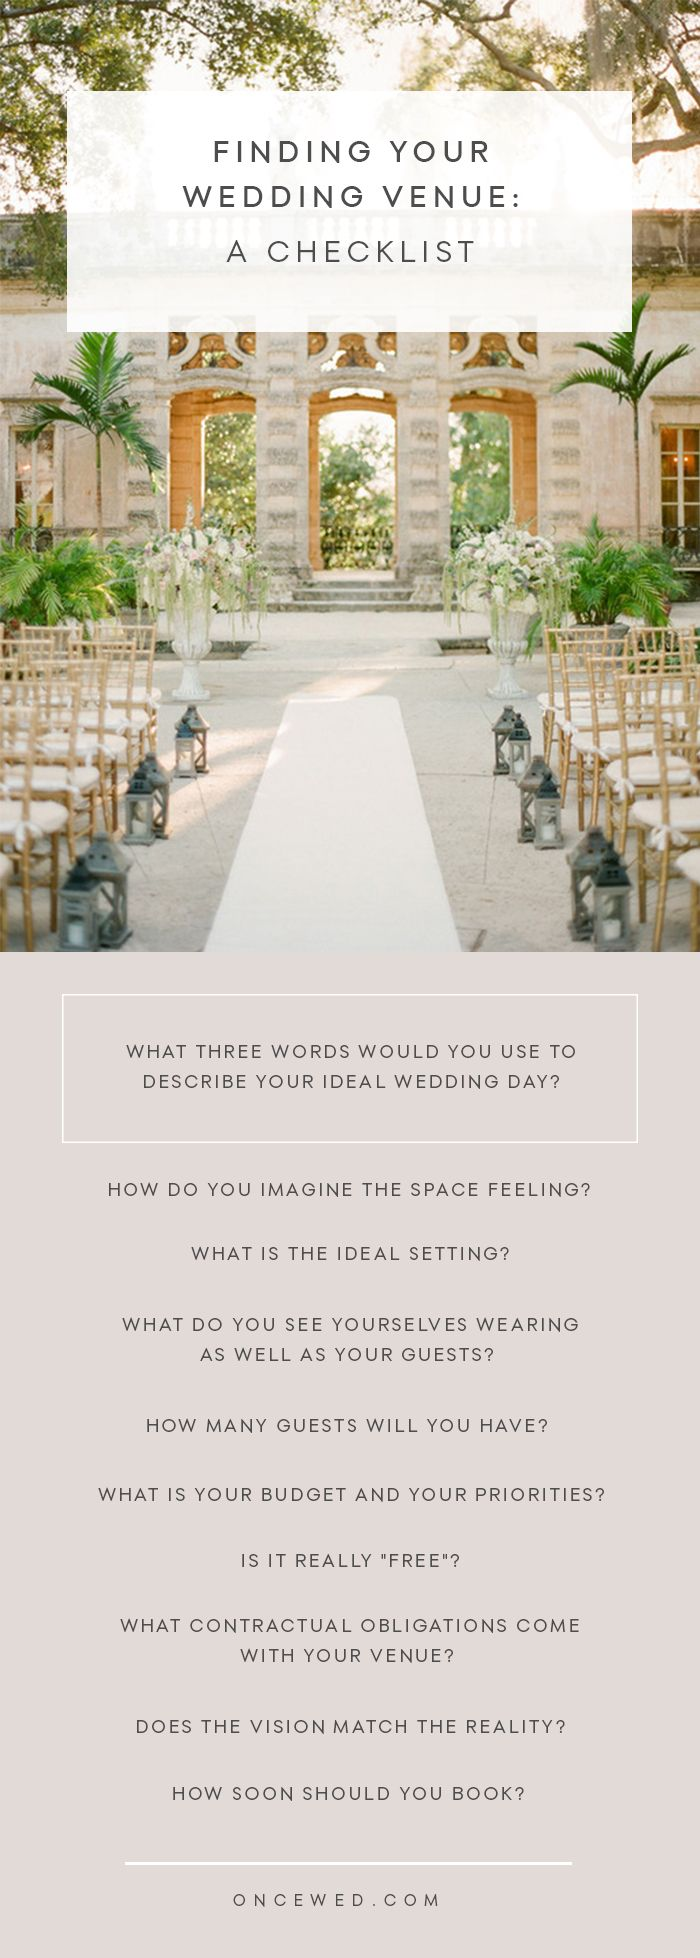 10 Questions to Ask When Choosing A